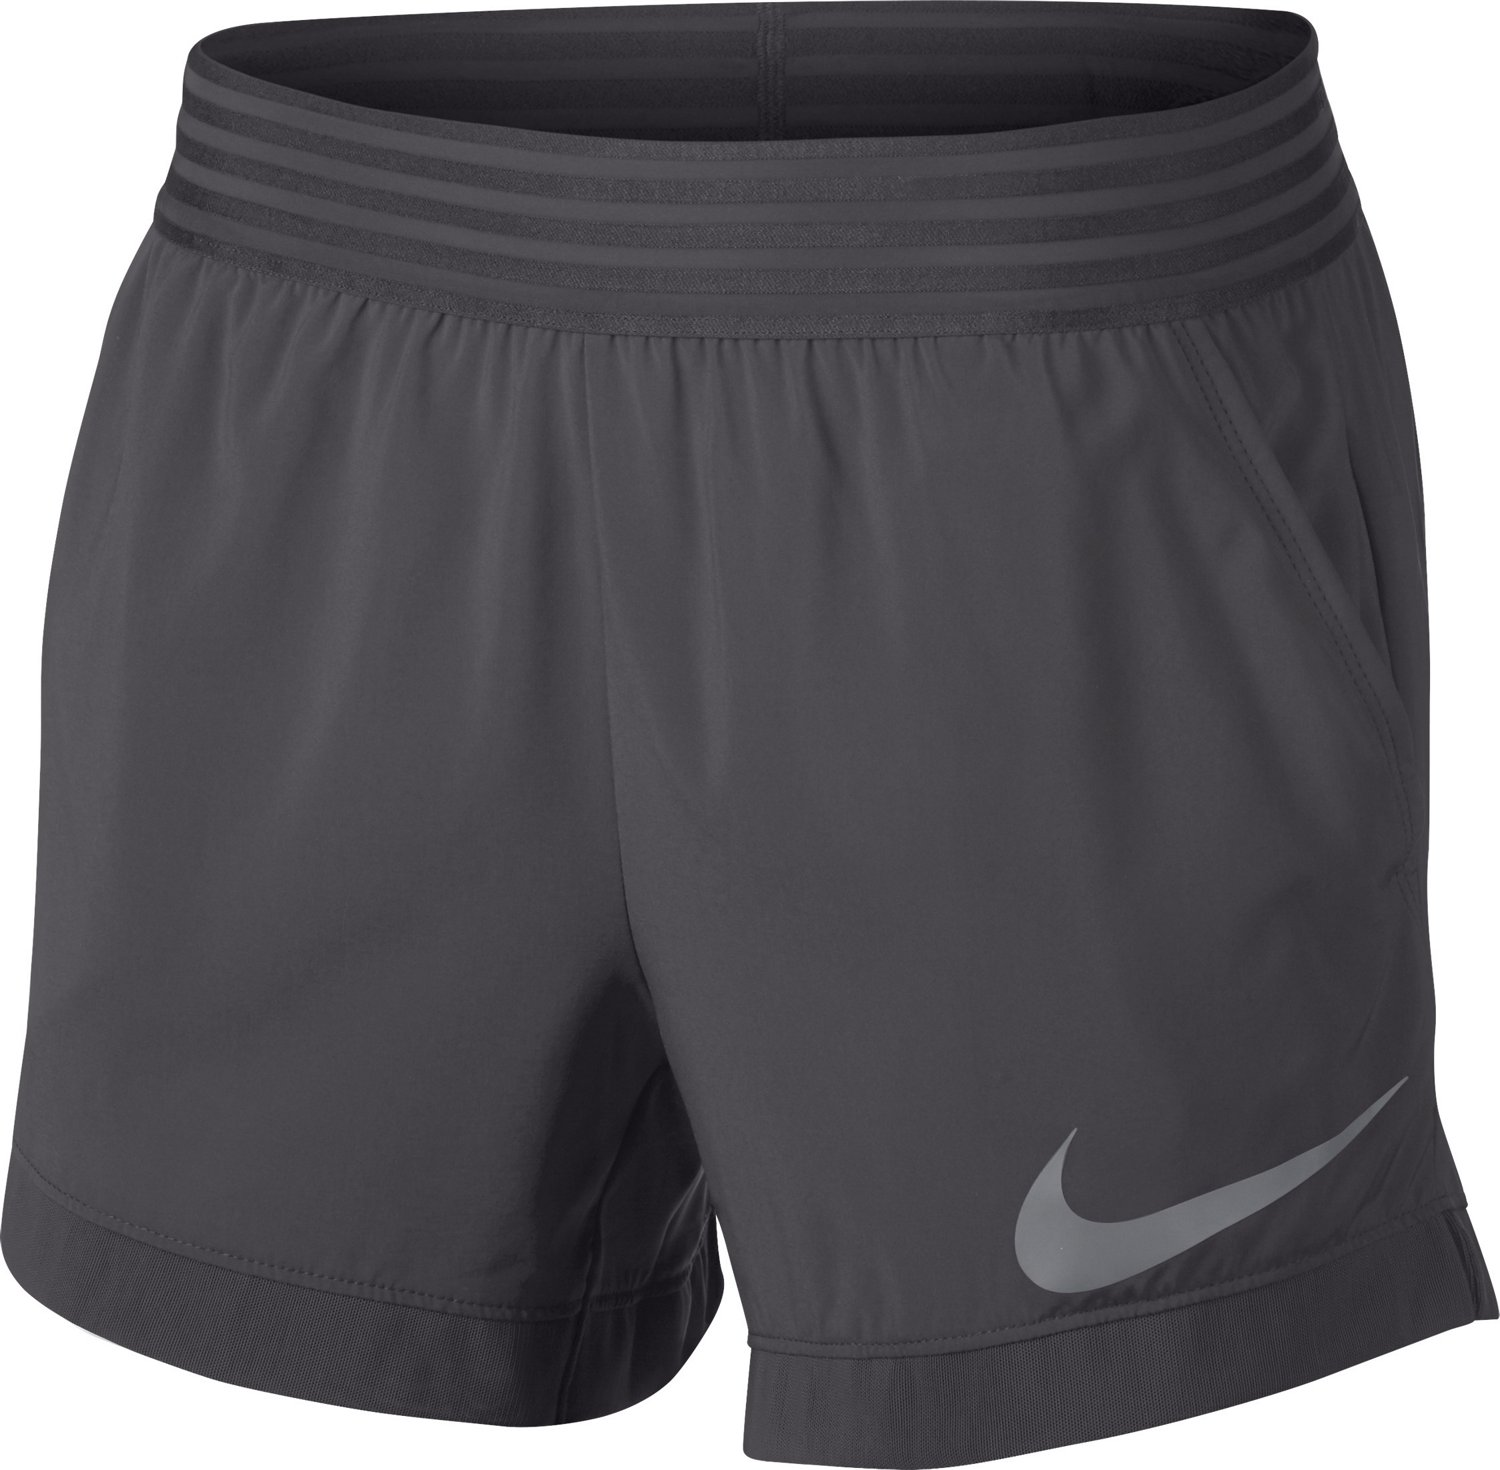 Display product reviews for Nike Women s Flex Training Short 59bf42b5b6